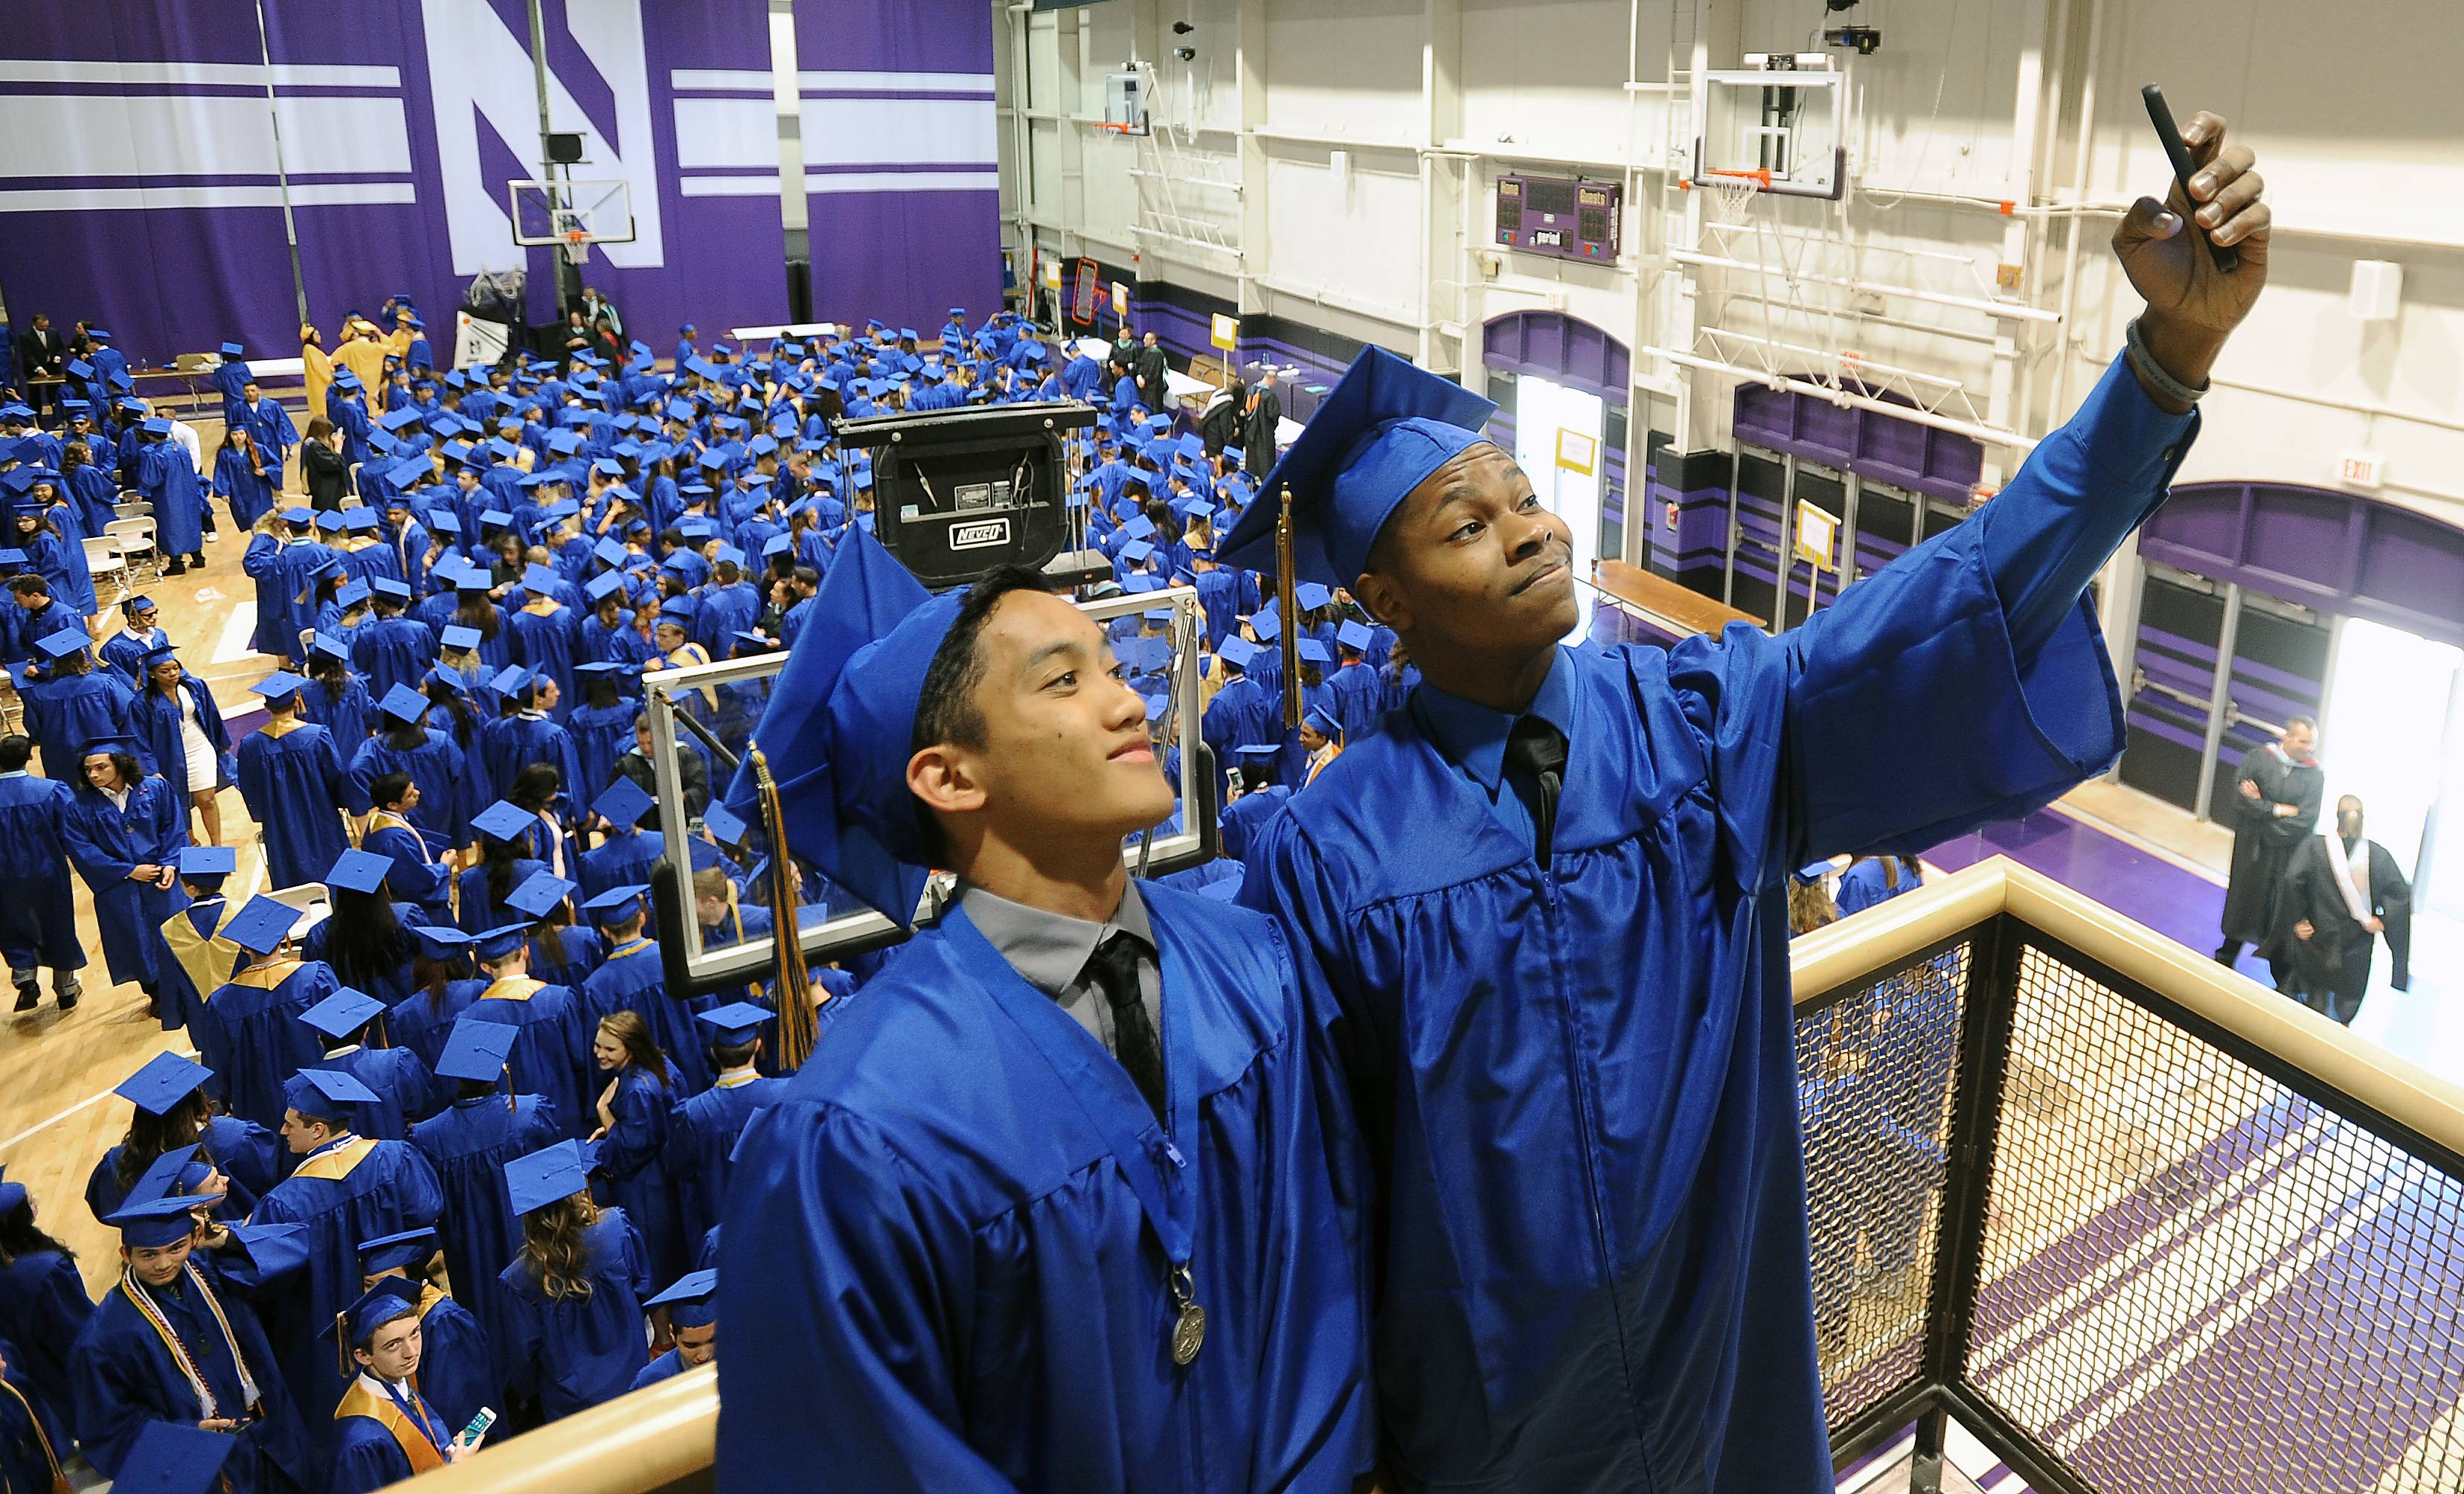 Eric Ablang, 18, of Gurnee and Carl Fleming, 18, of Gurnee take a selfie with their classmates behind them at Warren Township High School's 99th commencement ceremony Saturday at Welsh-Ryan Arena at Northwestern University in Evanston.